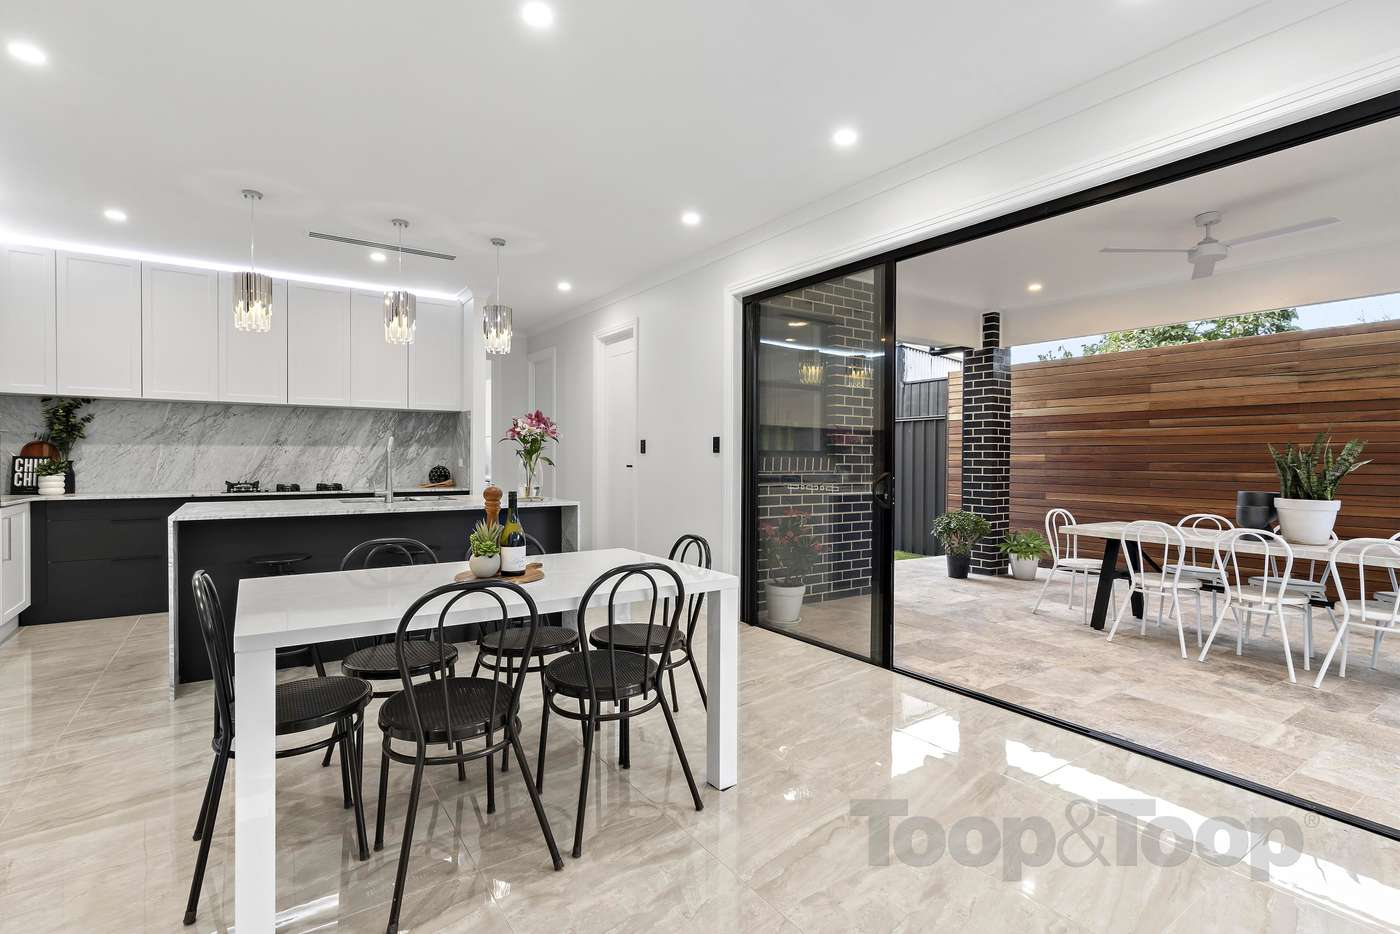 Fifth view of Homely house listing, 2A Darebin Street, Mile End SA 5031